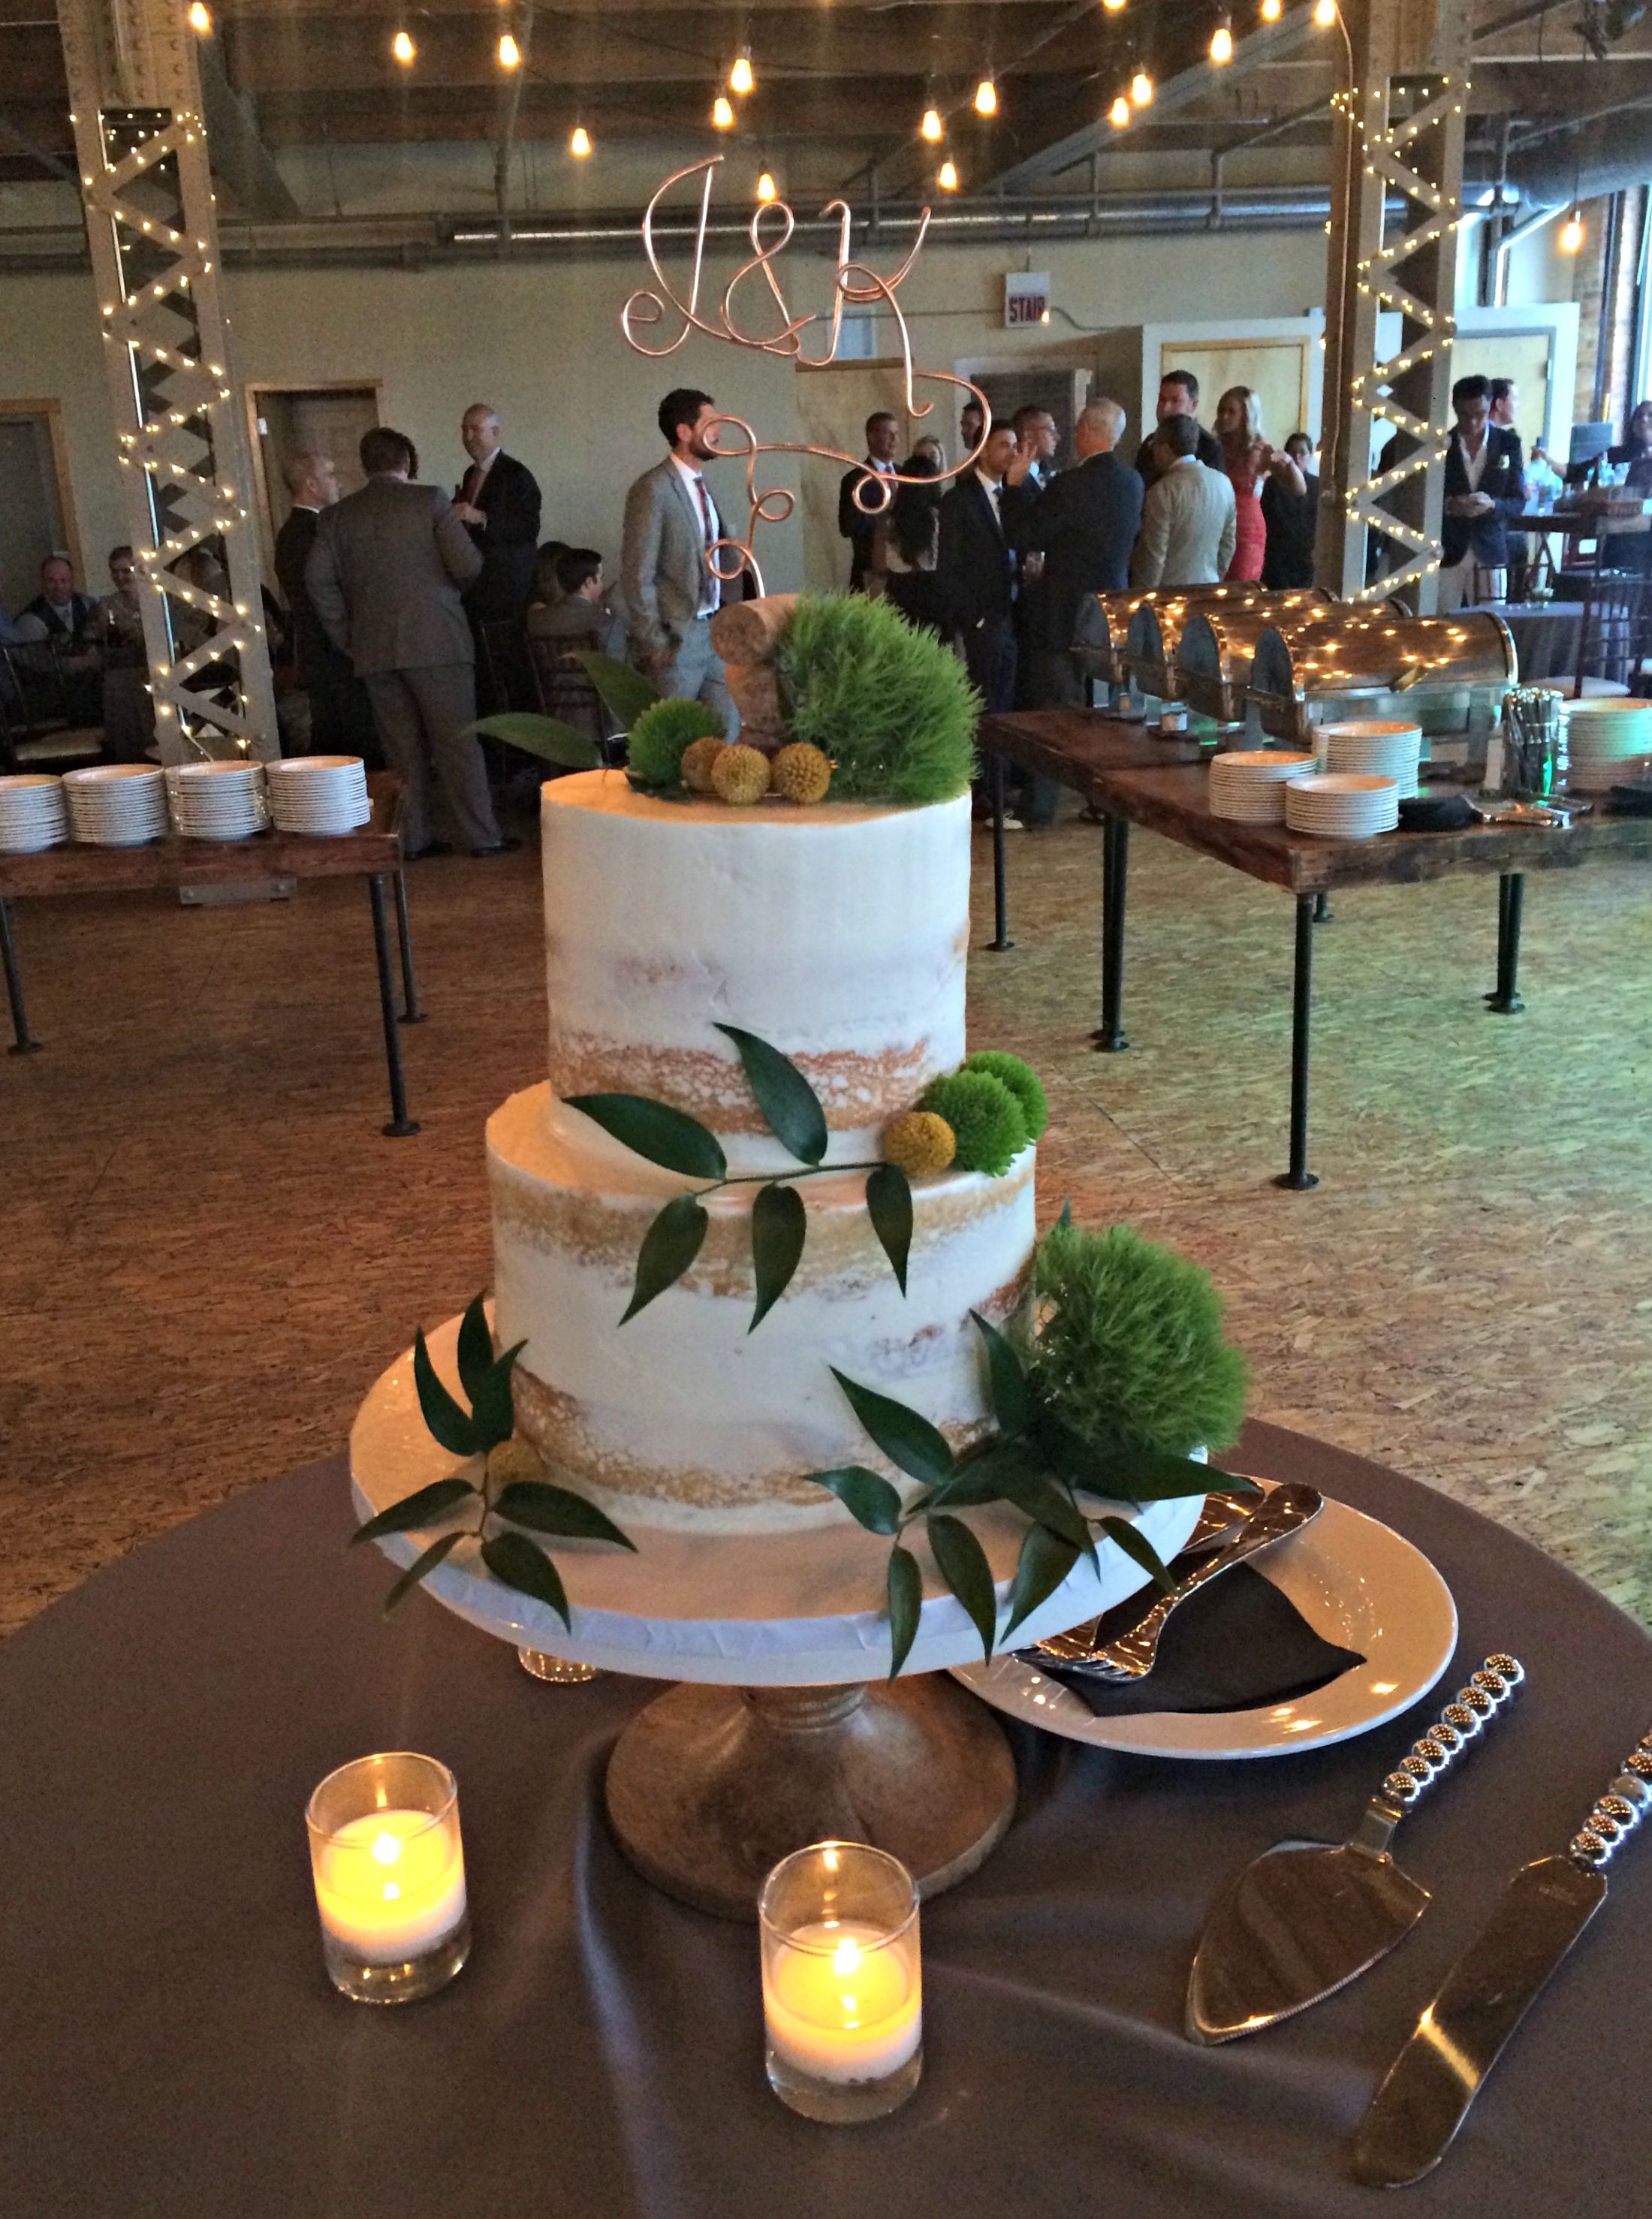 kim and jeremy's wedding cake